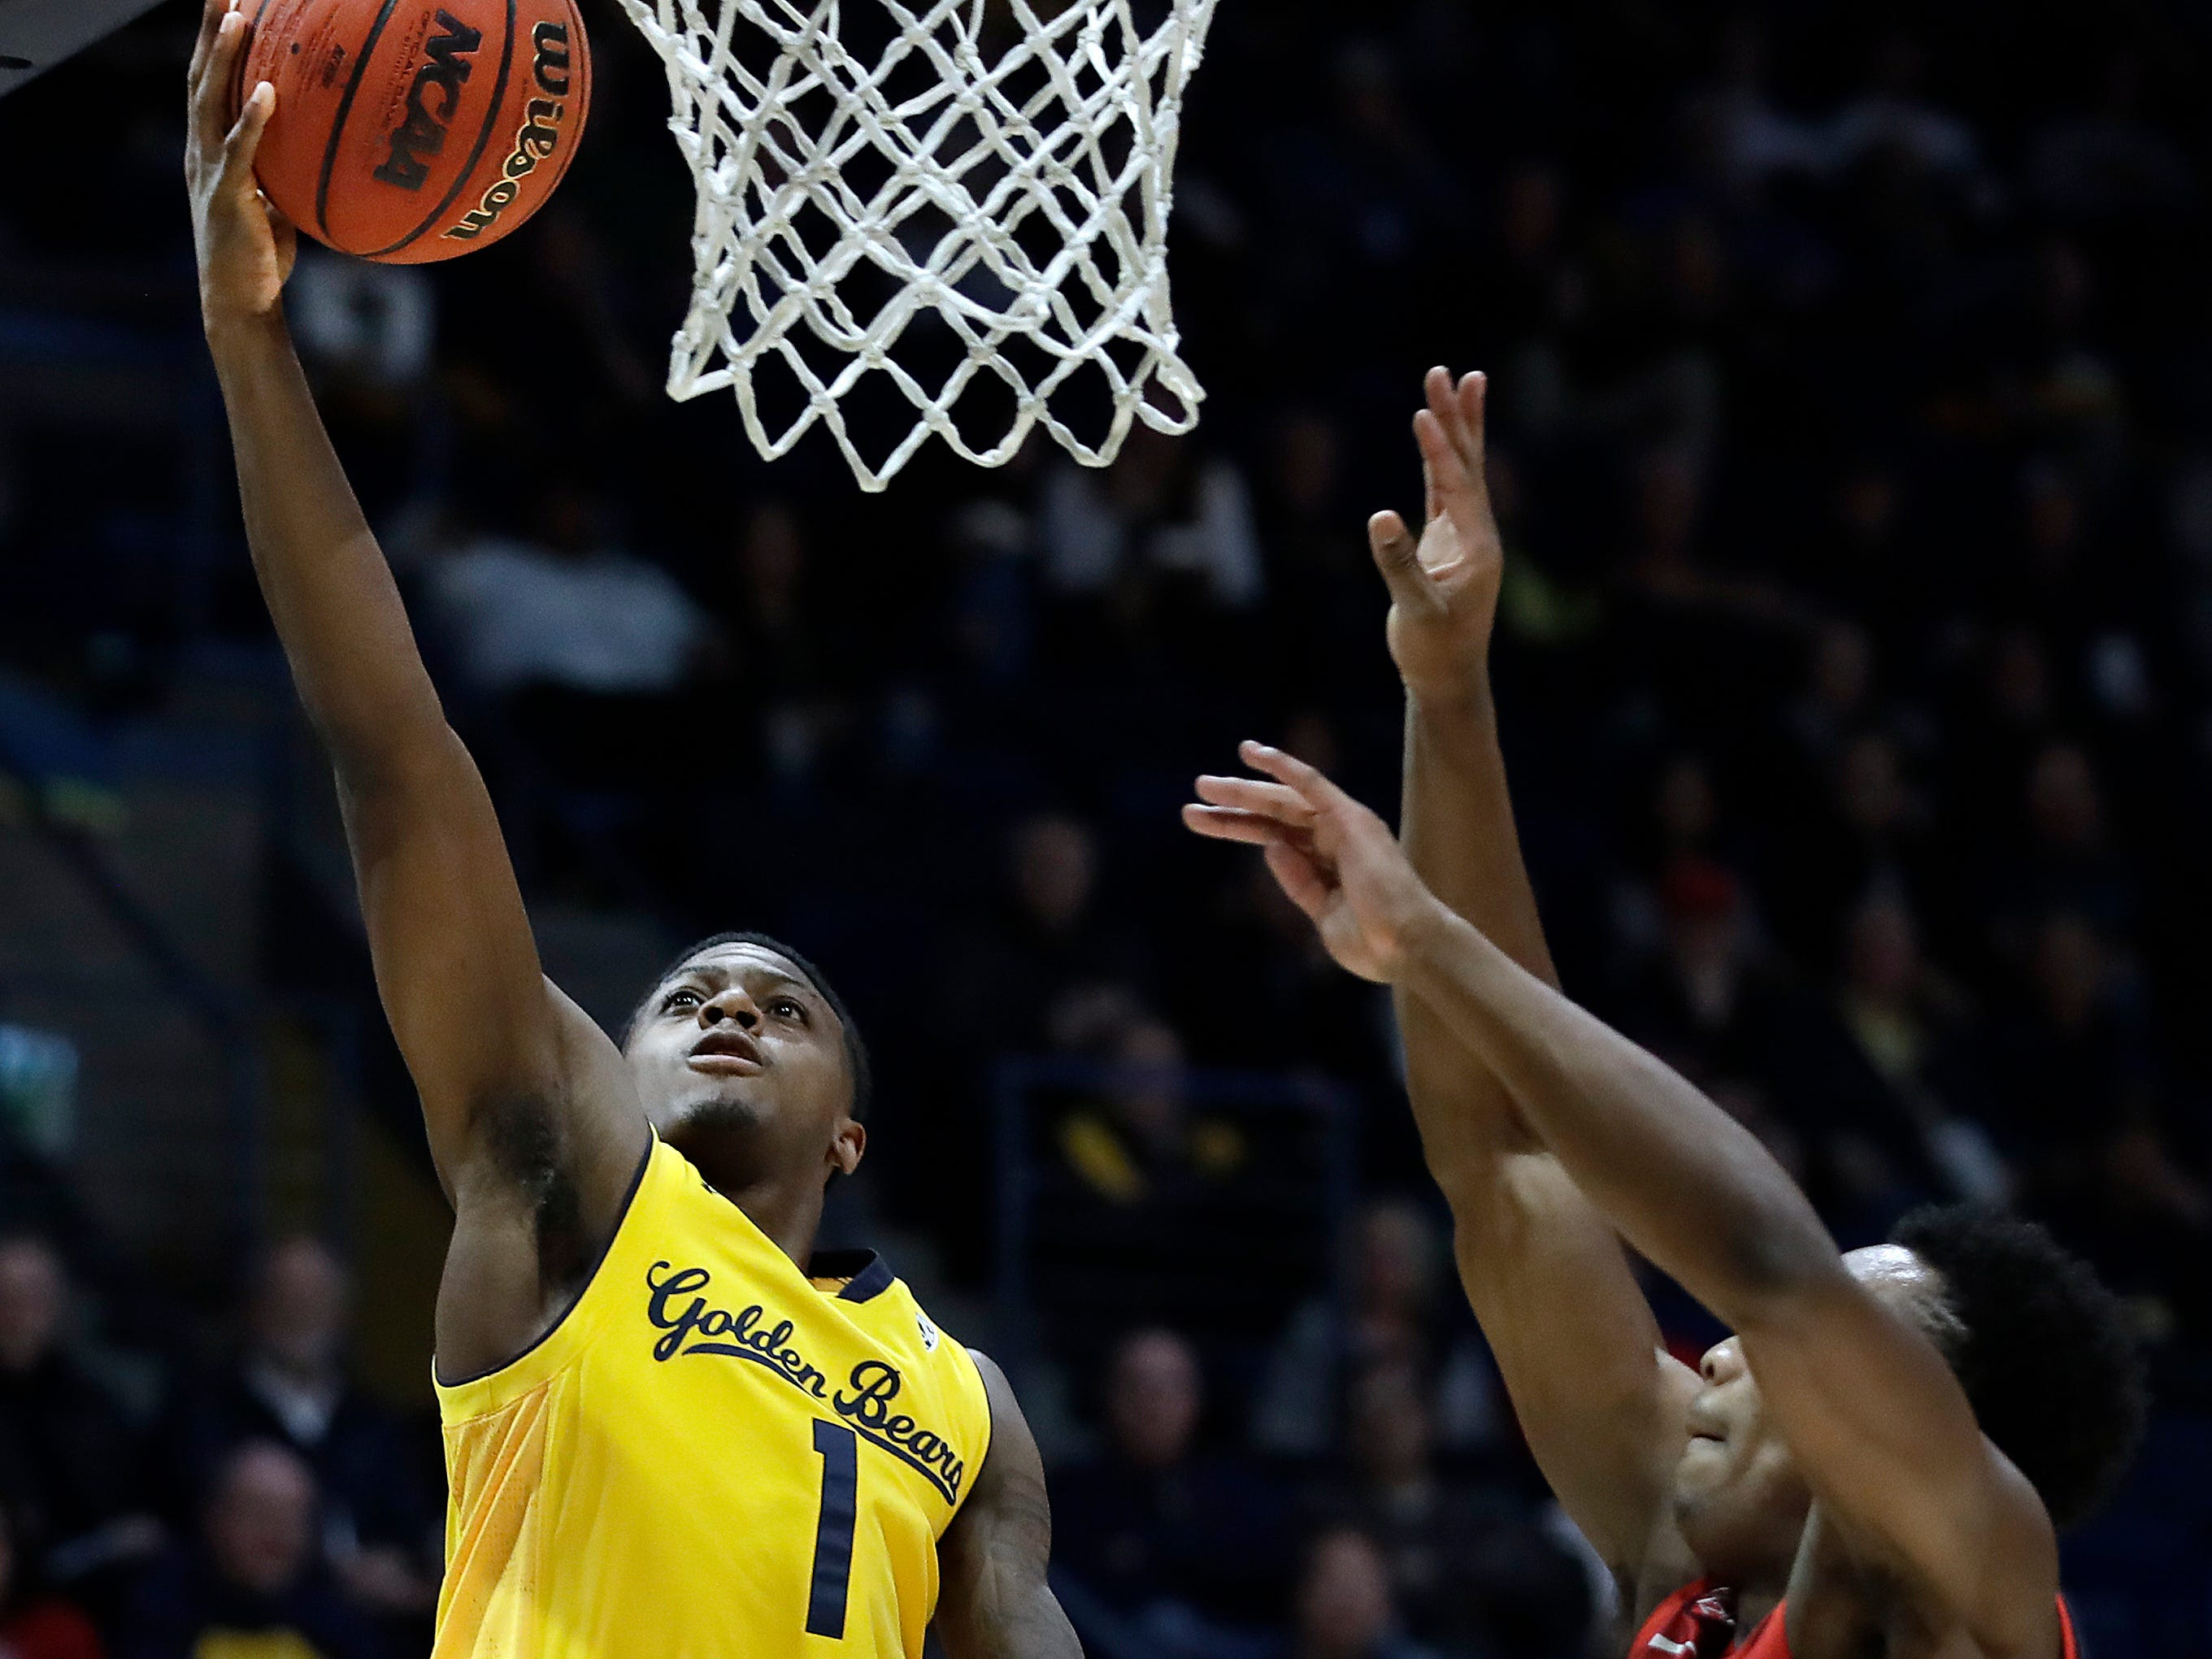 California's Darius McNeill, left, lays up a shot against Arizona's Brandon Williams (2) during the first half of an NCAA college basketball game Saturday, Jan. 12, 2019, in Berkeley, Calif. (AP Photo/Ben Margot)